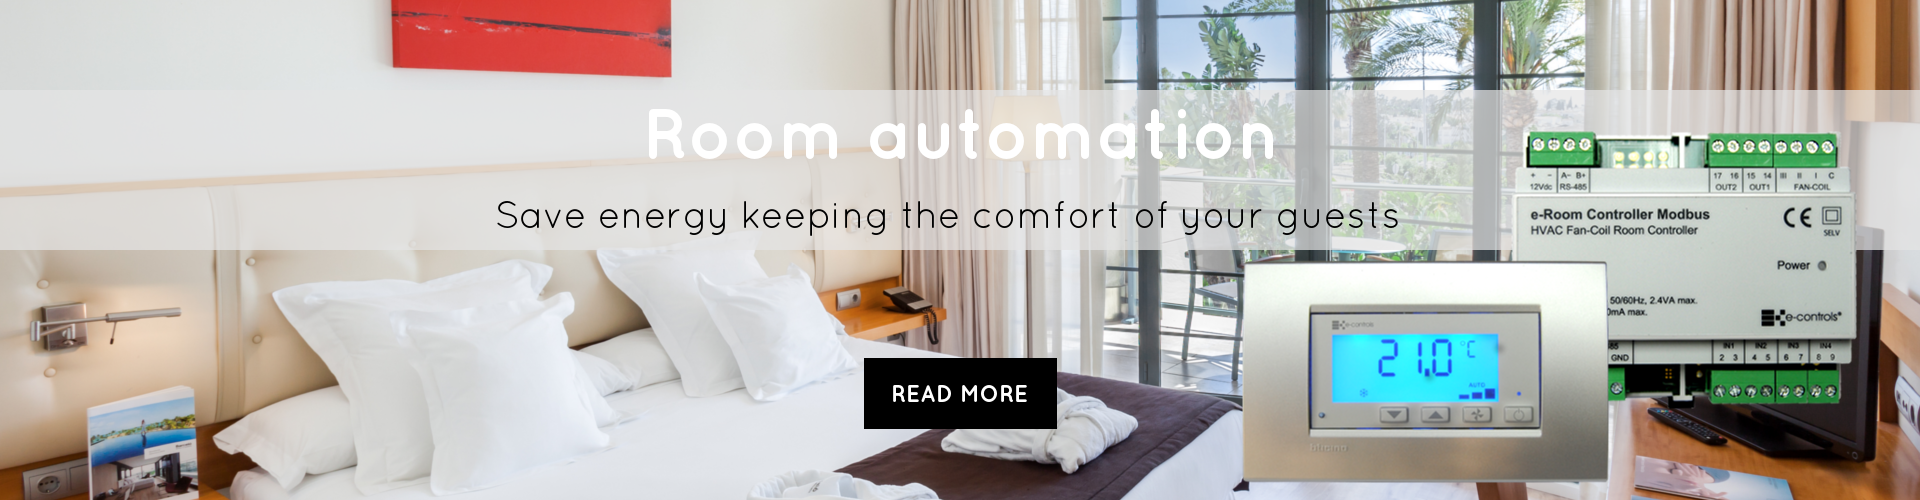 Room automation save energy keeping the comfort of your guests